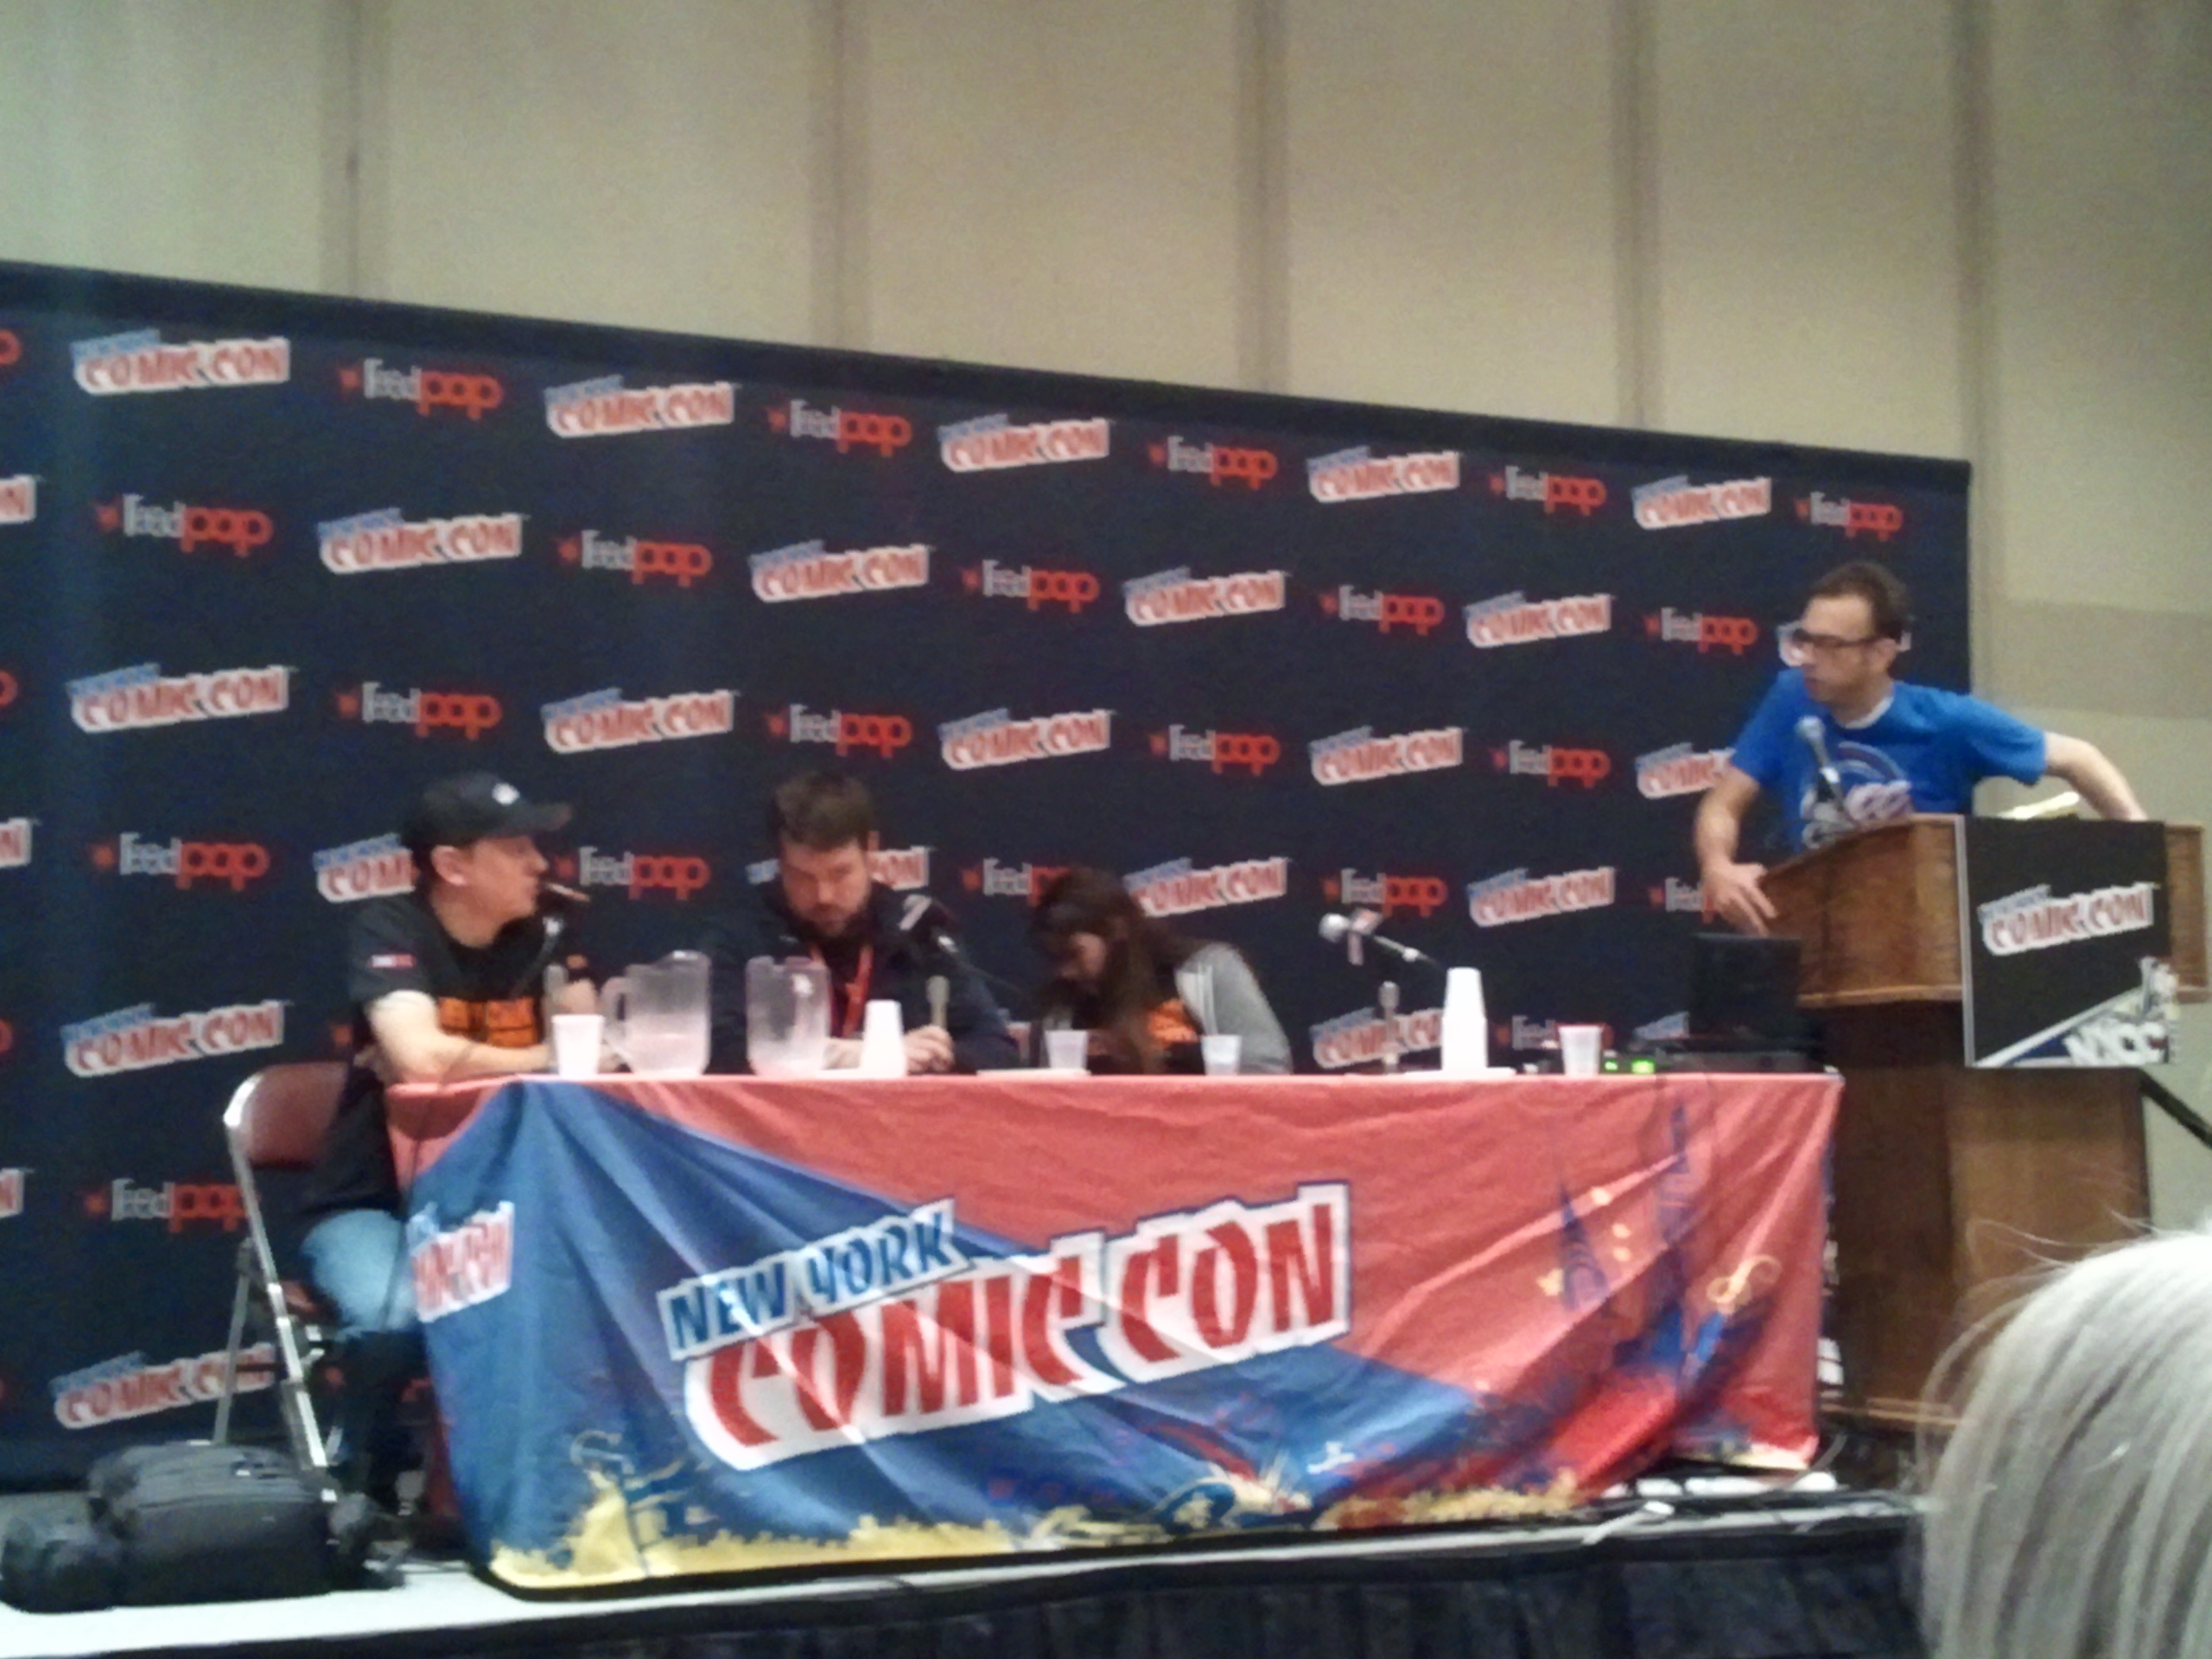 Nycc 13 Nycc Team Q Amp A Answers Questions On Badges Crowding More